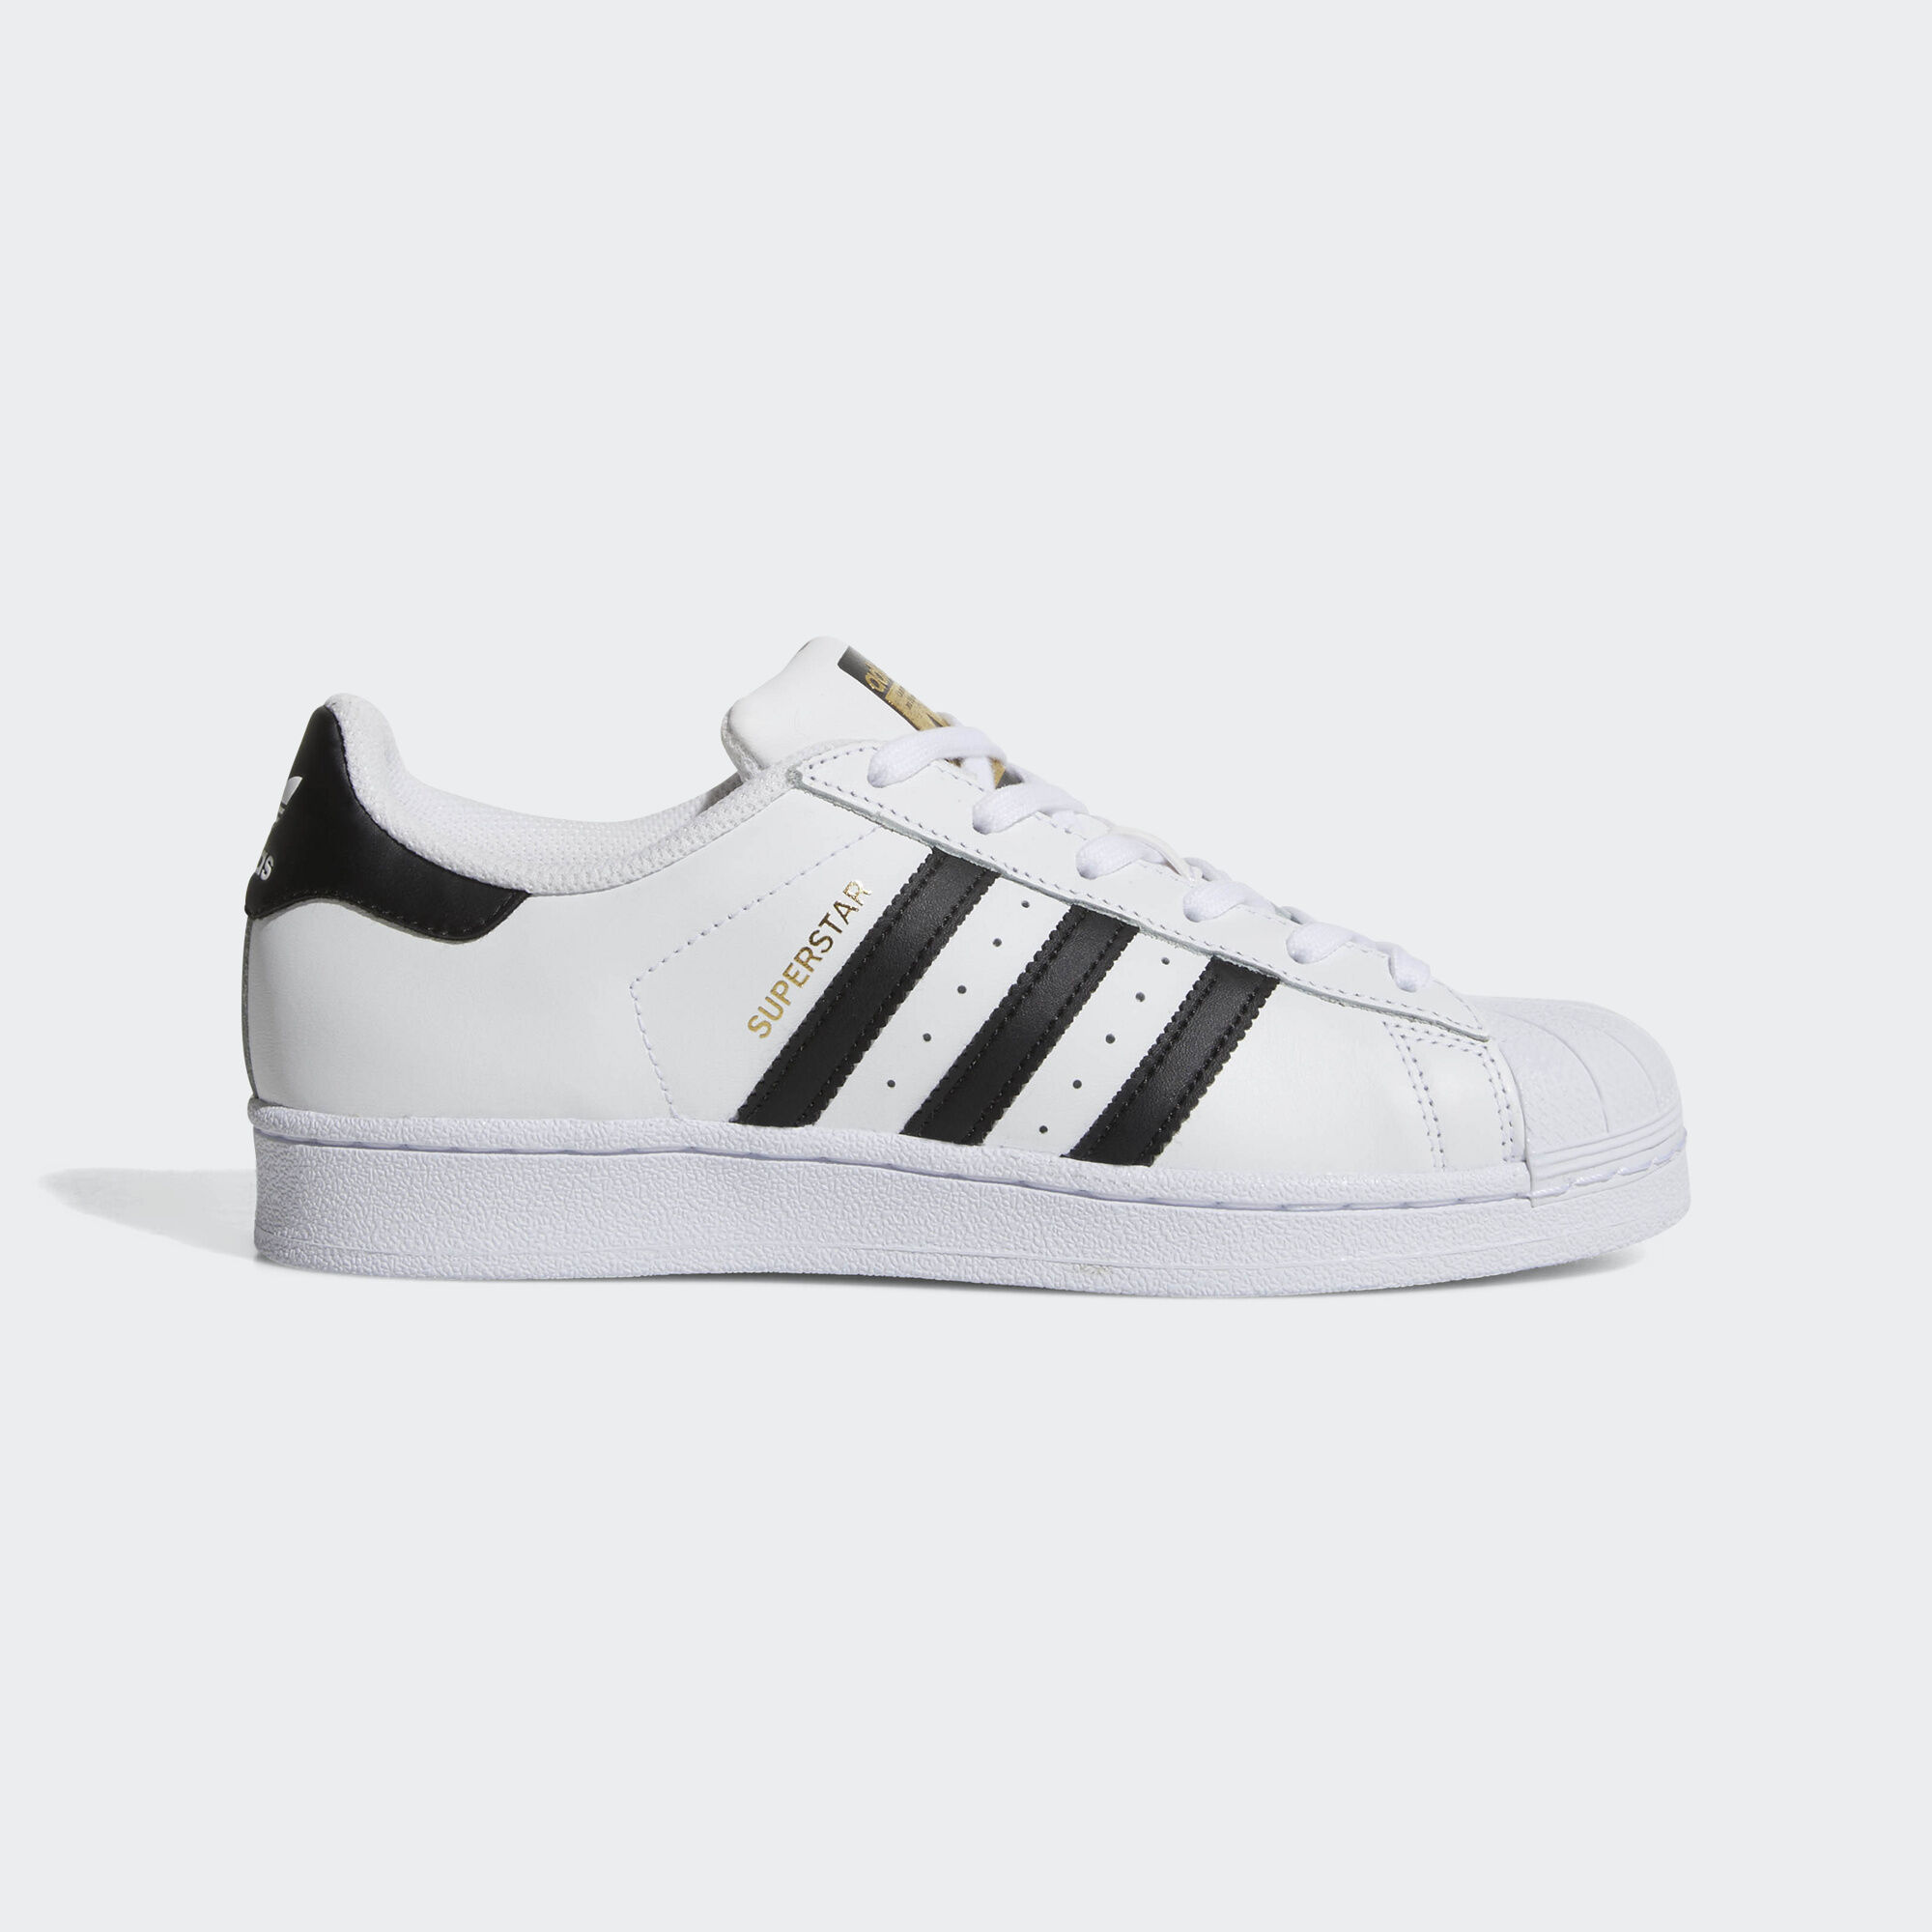 http://demandware.edgesuite.net/sits_pod20-adidas/dw/image/v2/aaqx_prd/on/demandware.static/-/Sites-adidas-products/en_US/dw16b5e856/zoom/C77153_01_standard.jpg?sw=2000&sfrm=jpg